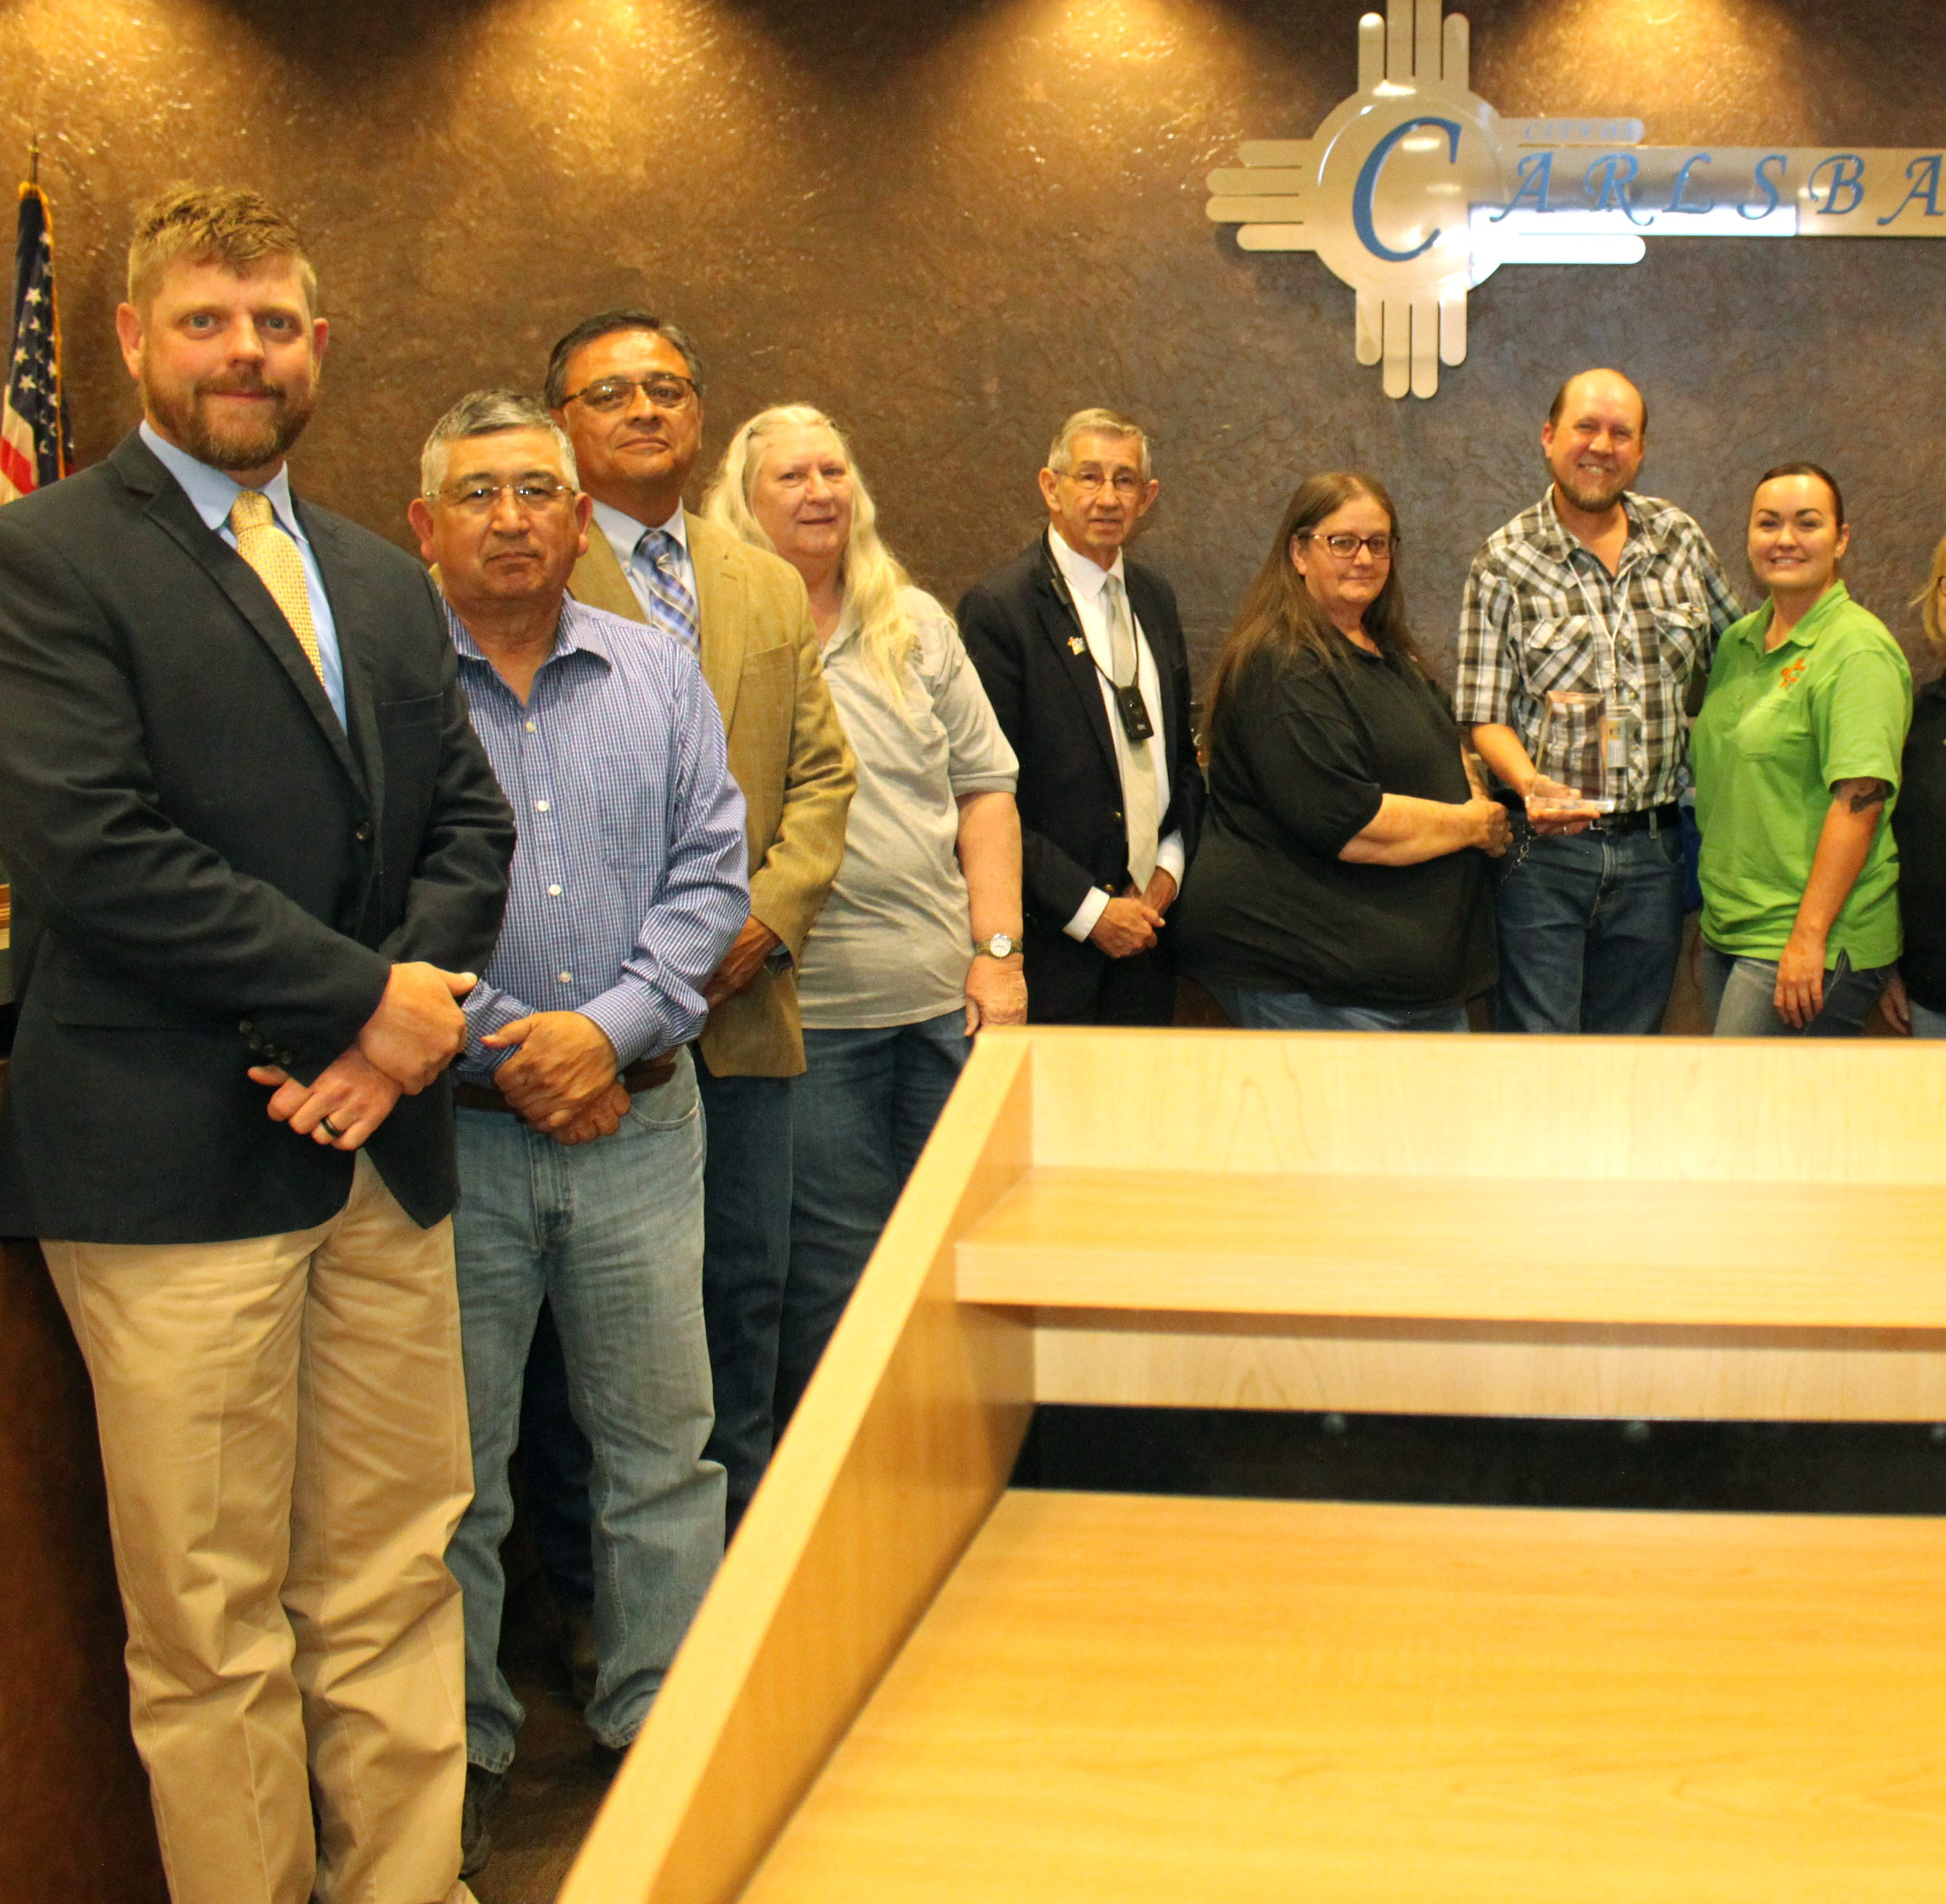 Business briefs: Carlsbad Transit named agency of the year